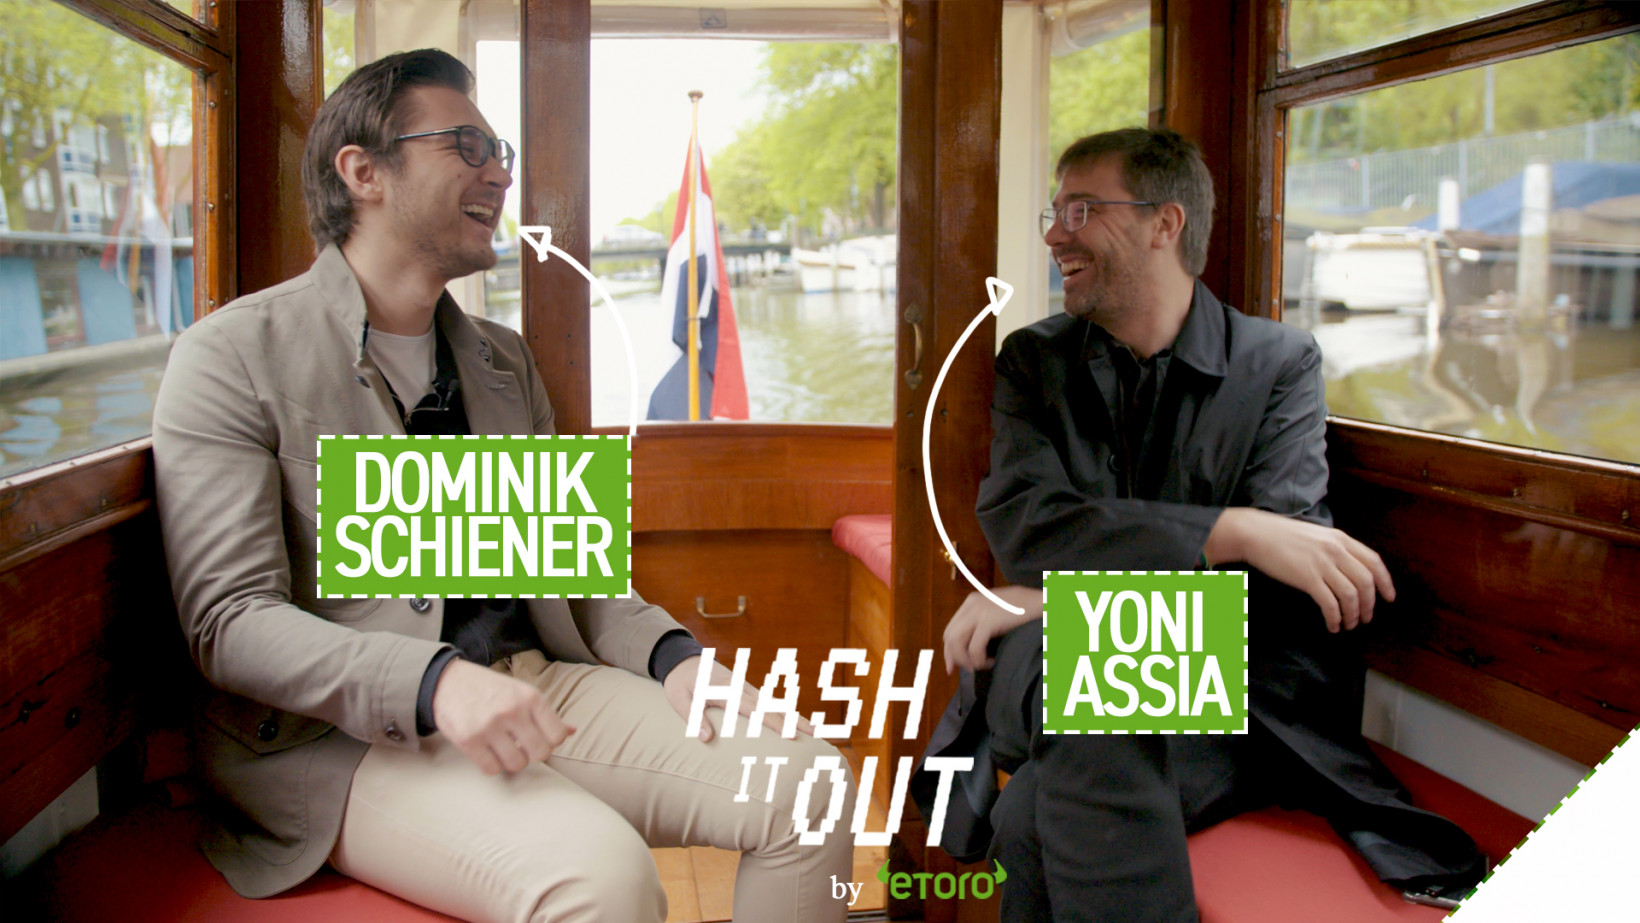 Watch the first episode of 'Hash It Out' with eToro's Yoni Assia and IOTA's Dominik Schiener